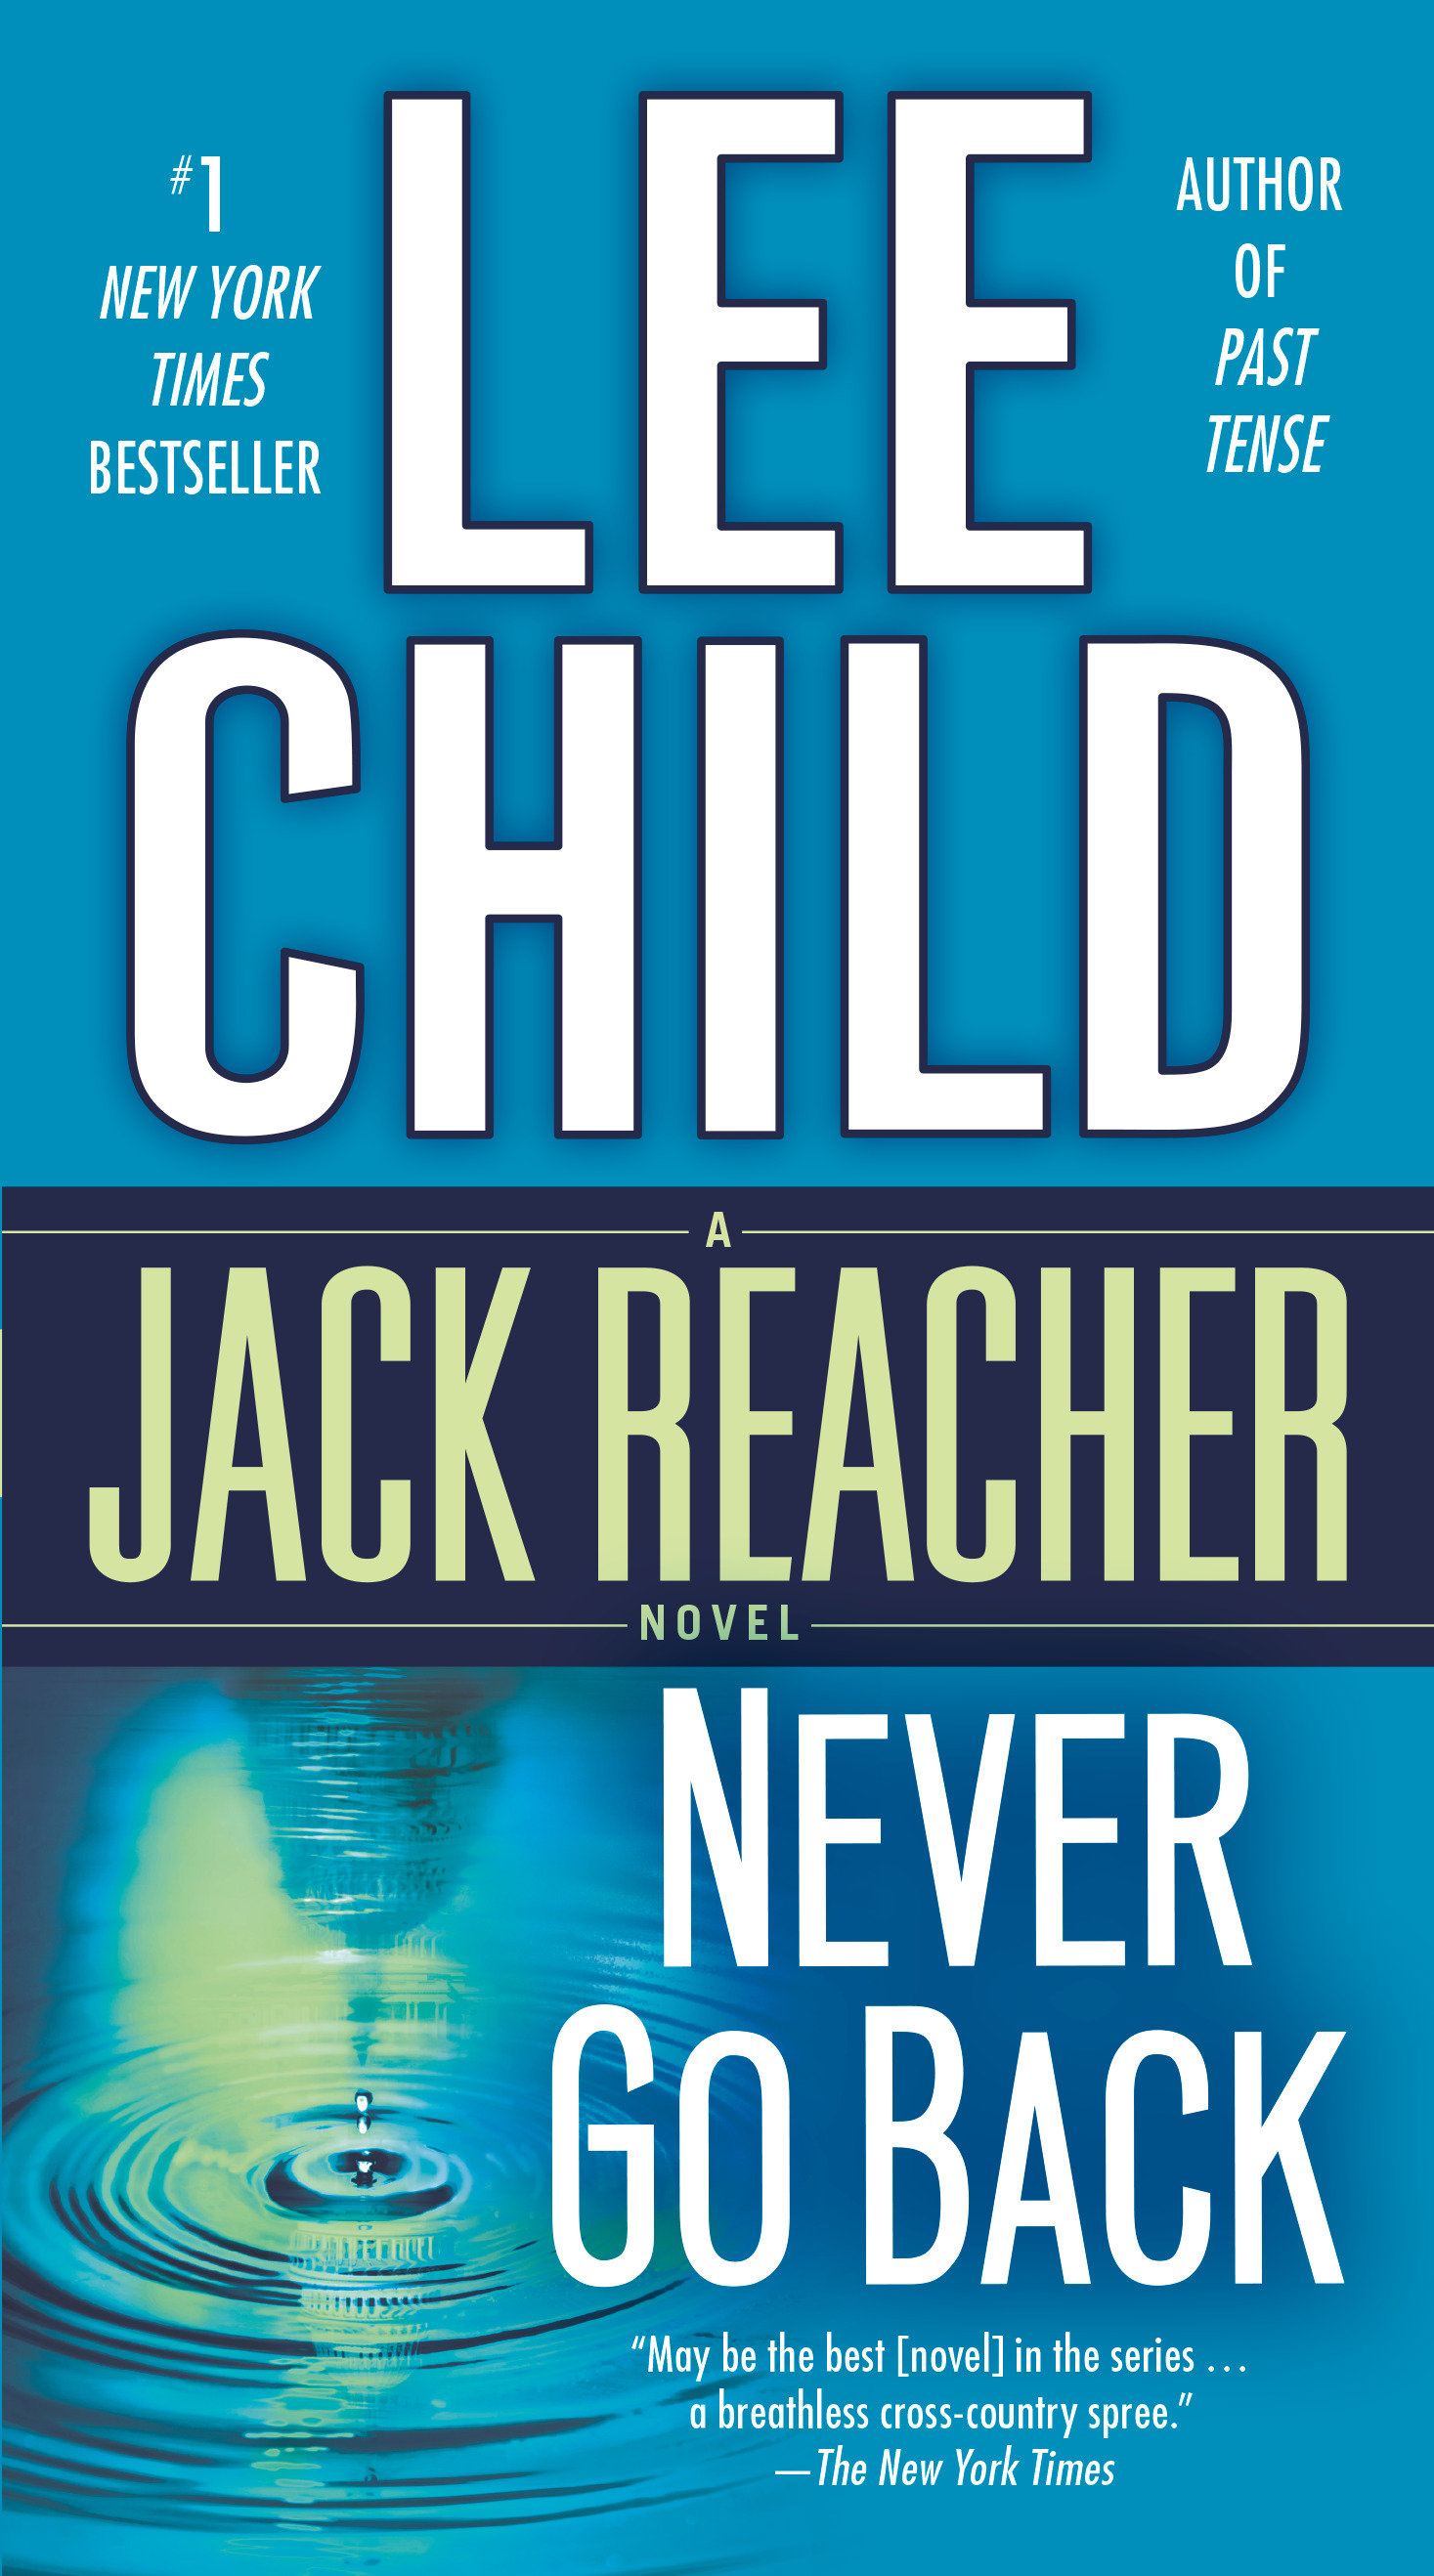 Never go back a Jack Reacher novel